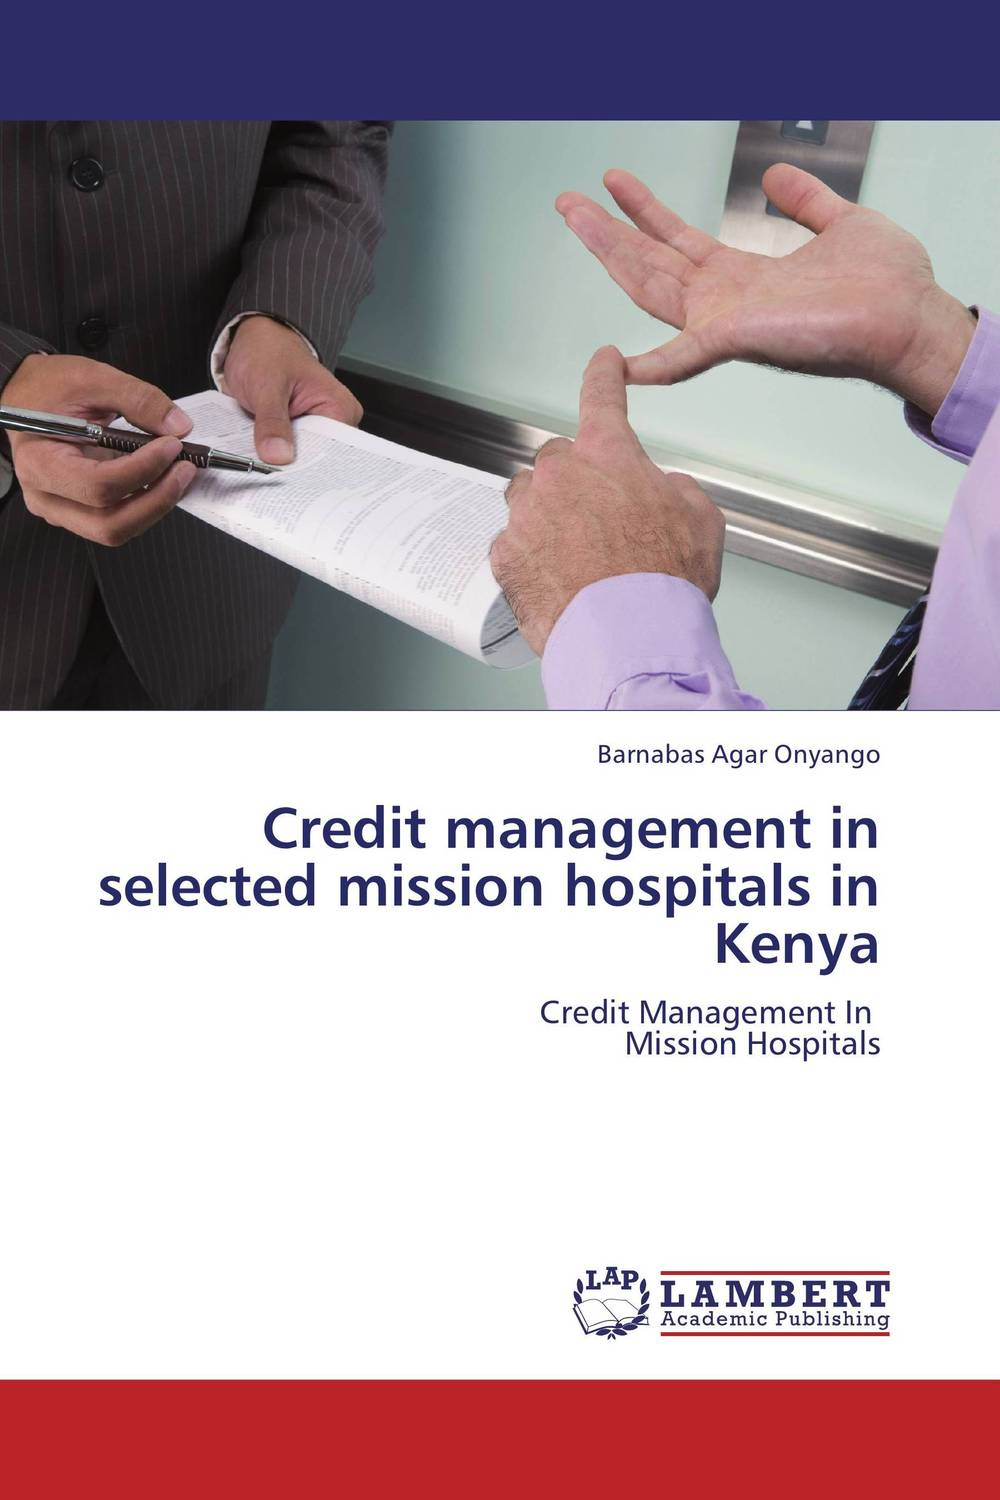 Credit management in selected  mission hospitals in Kenya lucky john croco spoon big game mission 24гр 004